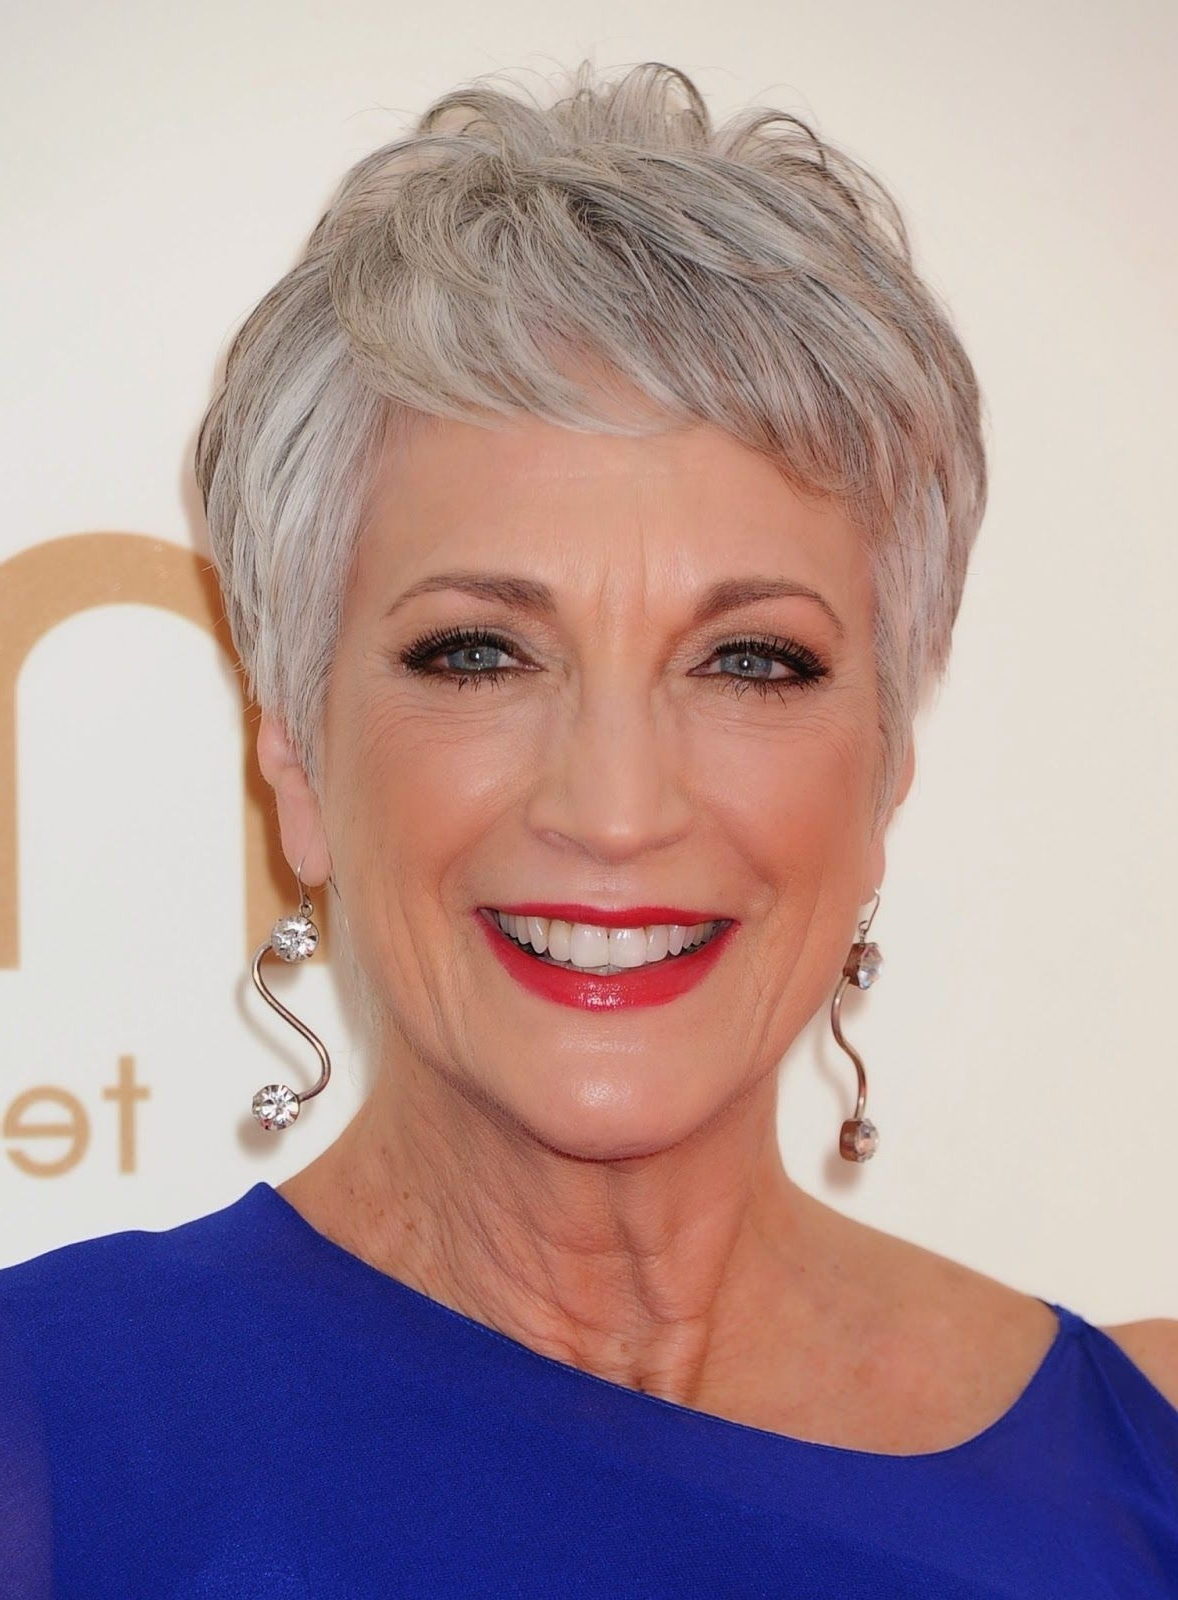 21 Short Haircuts For Women Over 50 | Short Pixie Haircuts, Short Pertaining To Most Current Pixie Hairstyles For Women Over (View 6 of 15)